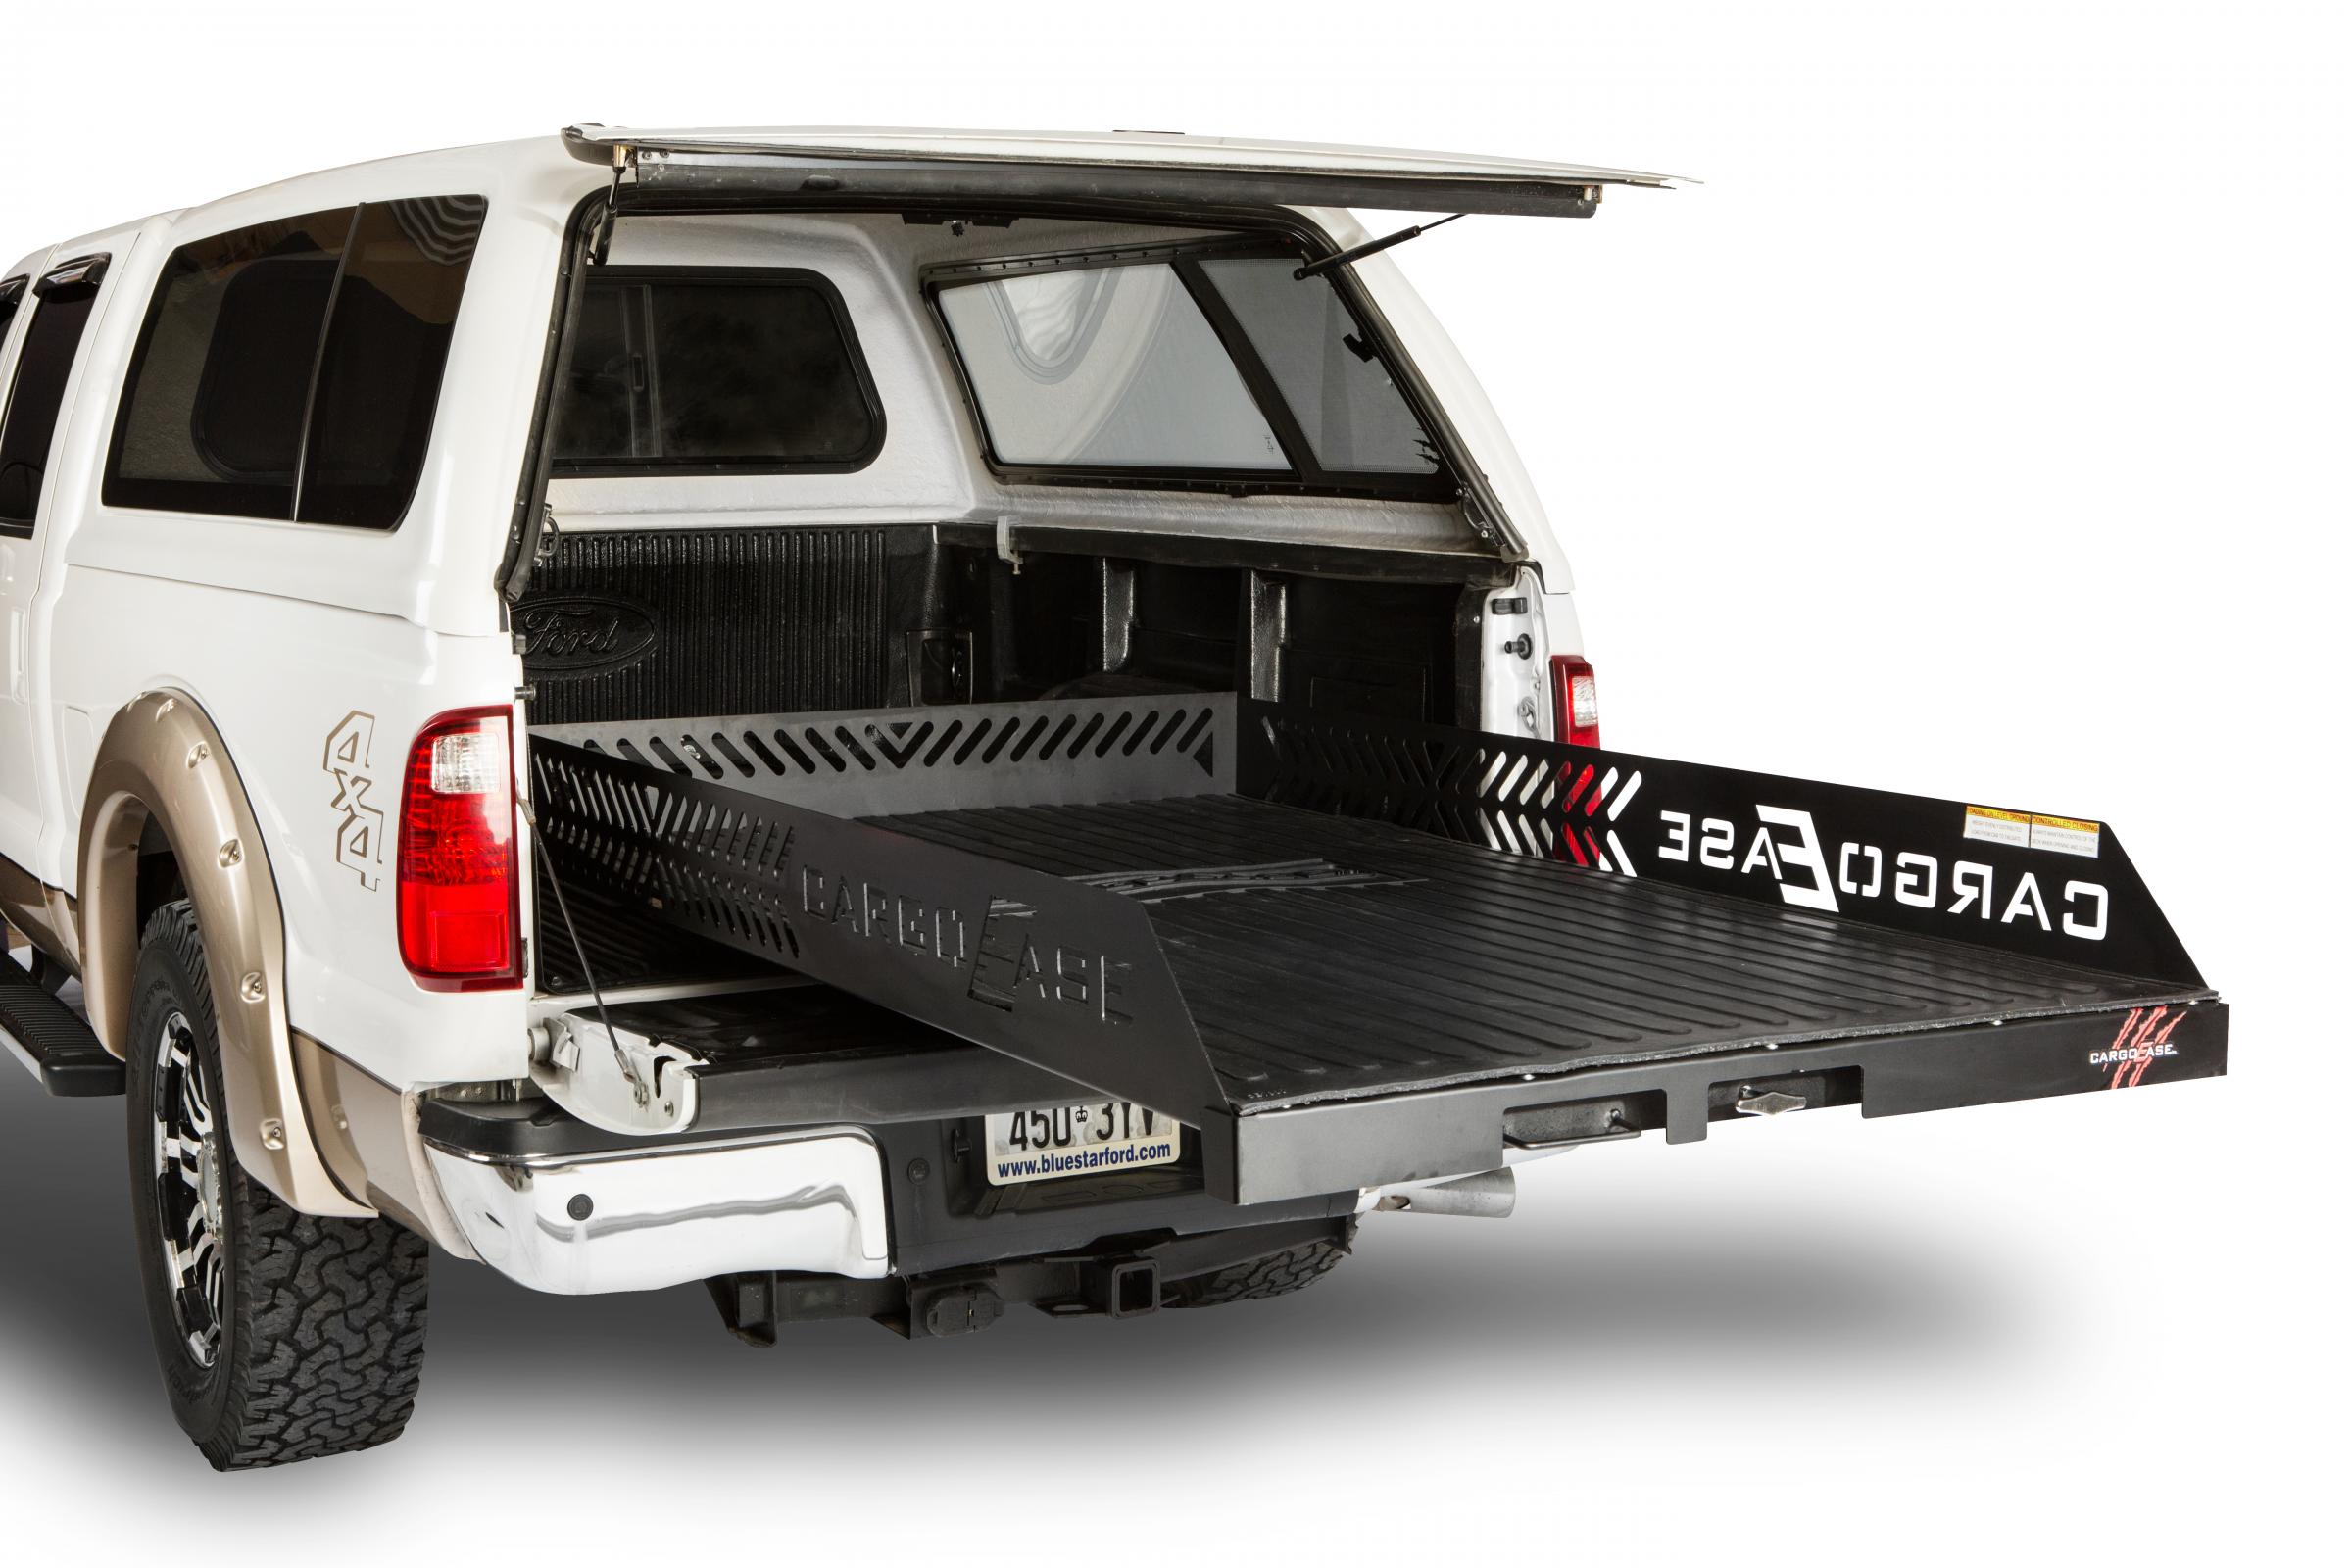 CE9548C3 Cargo Ease Bed Slide 3000 Pound Capacity